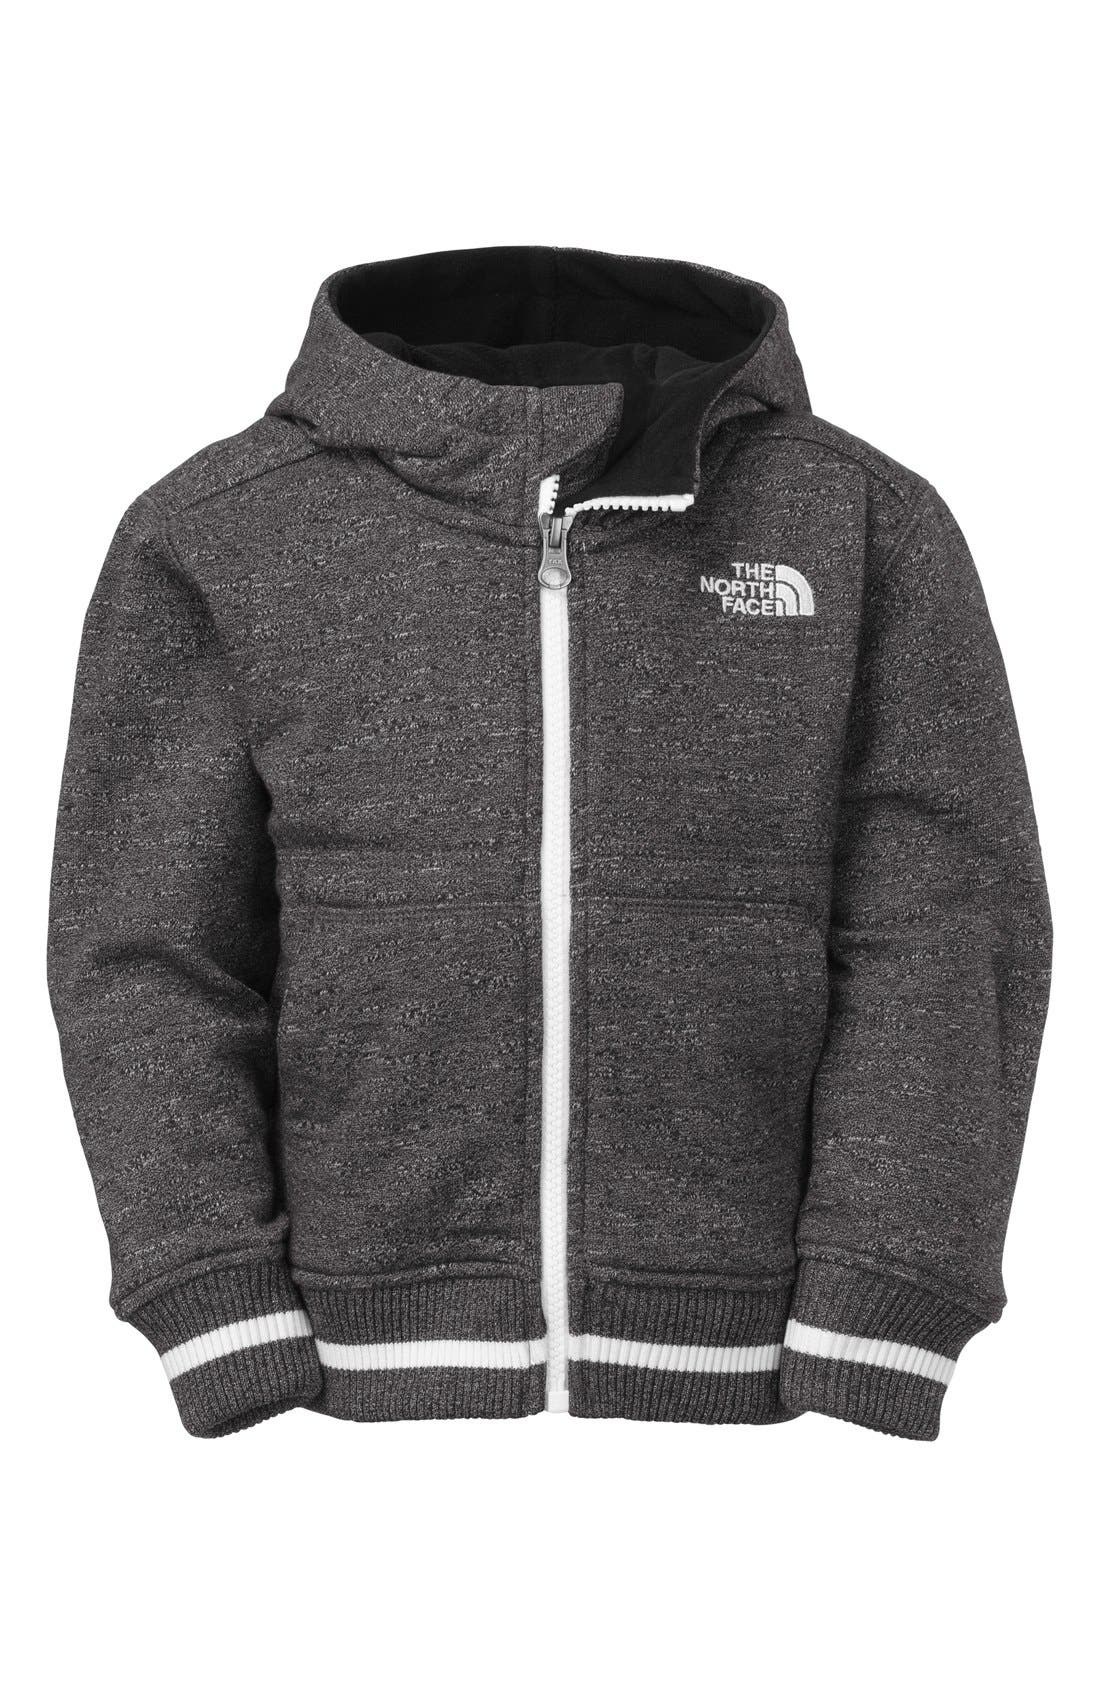 Baby North Face Jackets